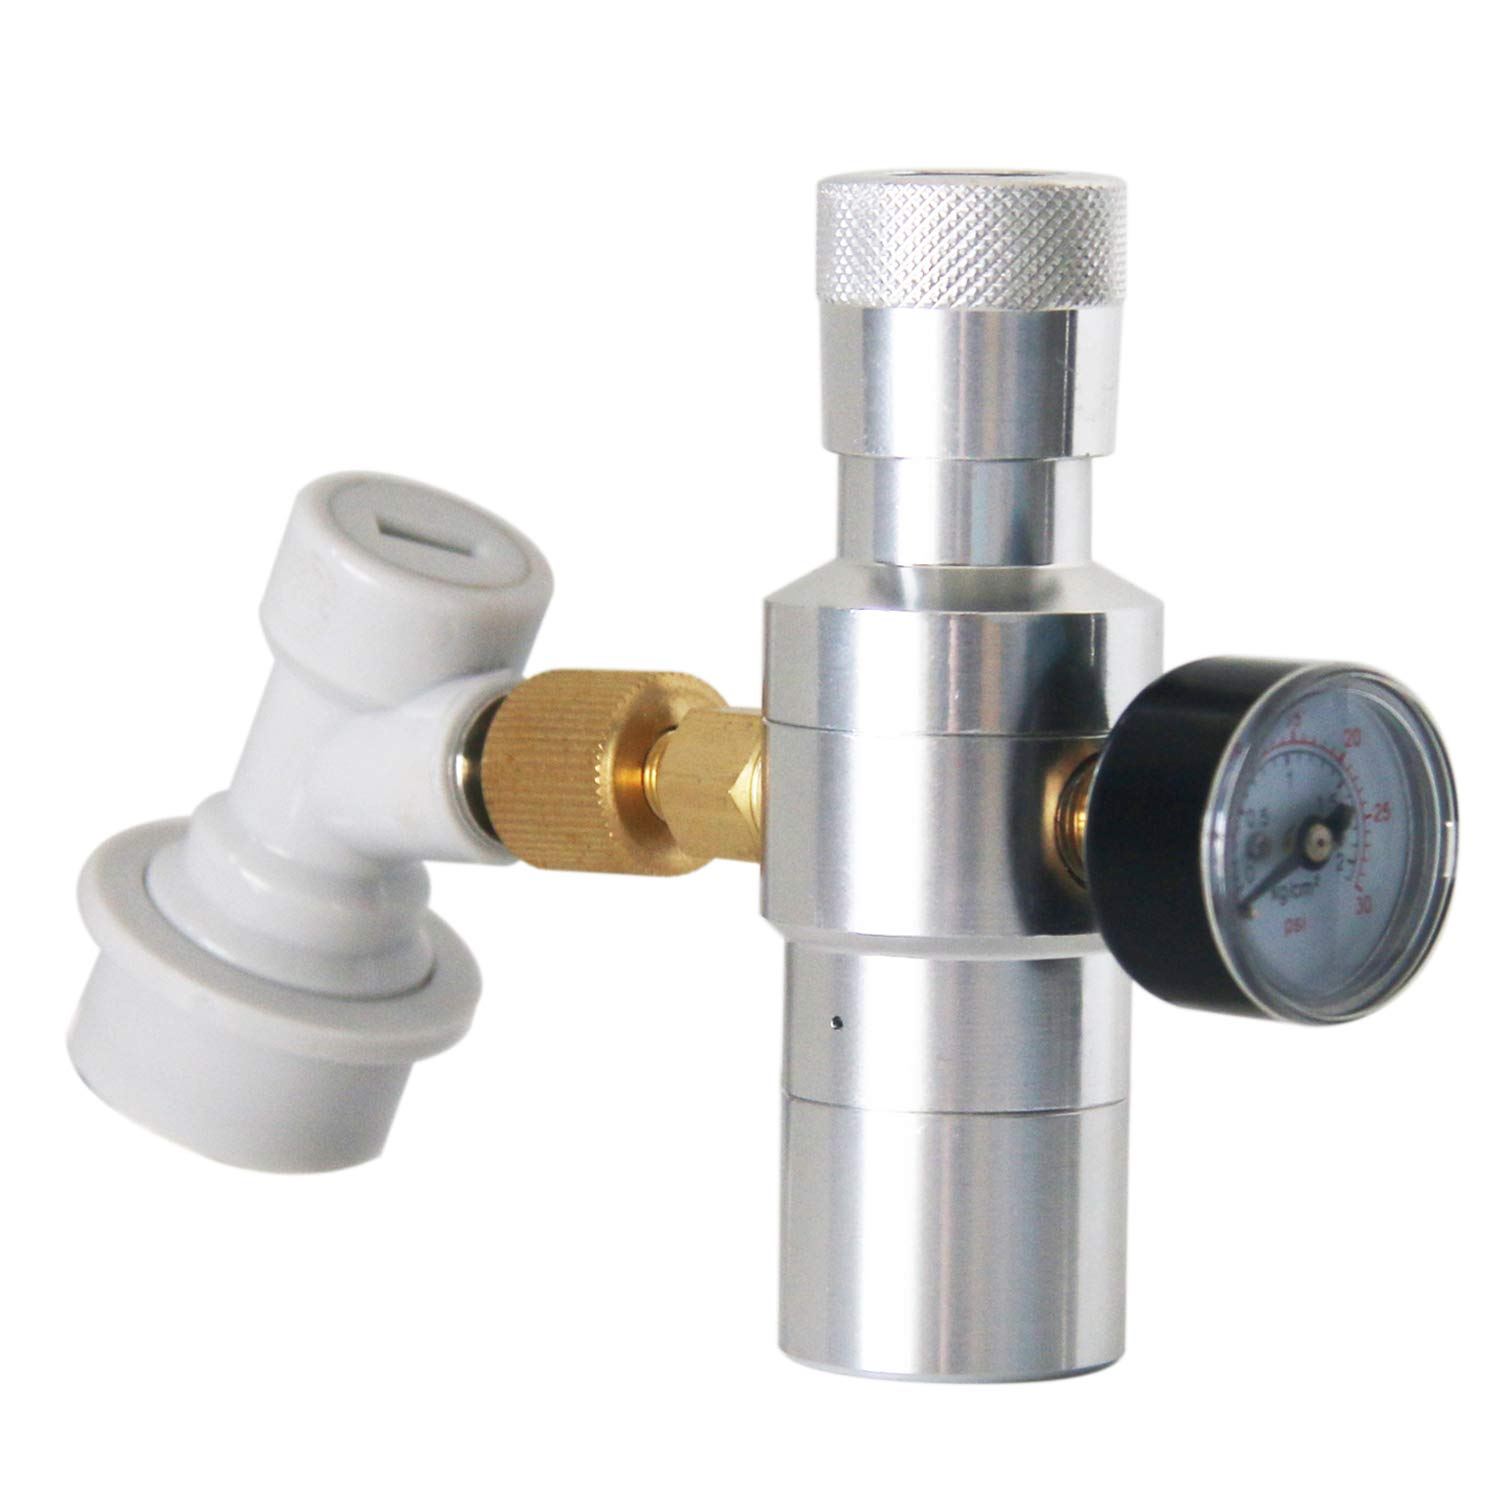 Ball Lock Gas Disconnect for Home Draft Beer Bottle Brewing Brand PERA Includes Keg Regulator 0-30 PSI CO2 Keg Charger CO2 Regulator 3//8 Thread Adapter